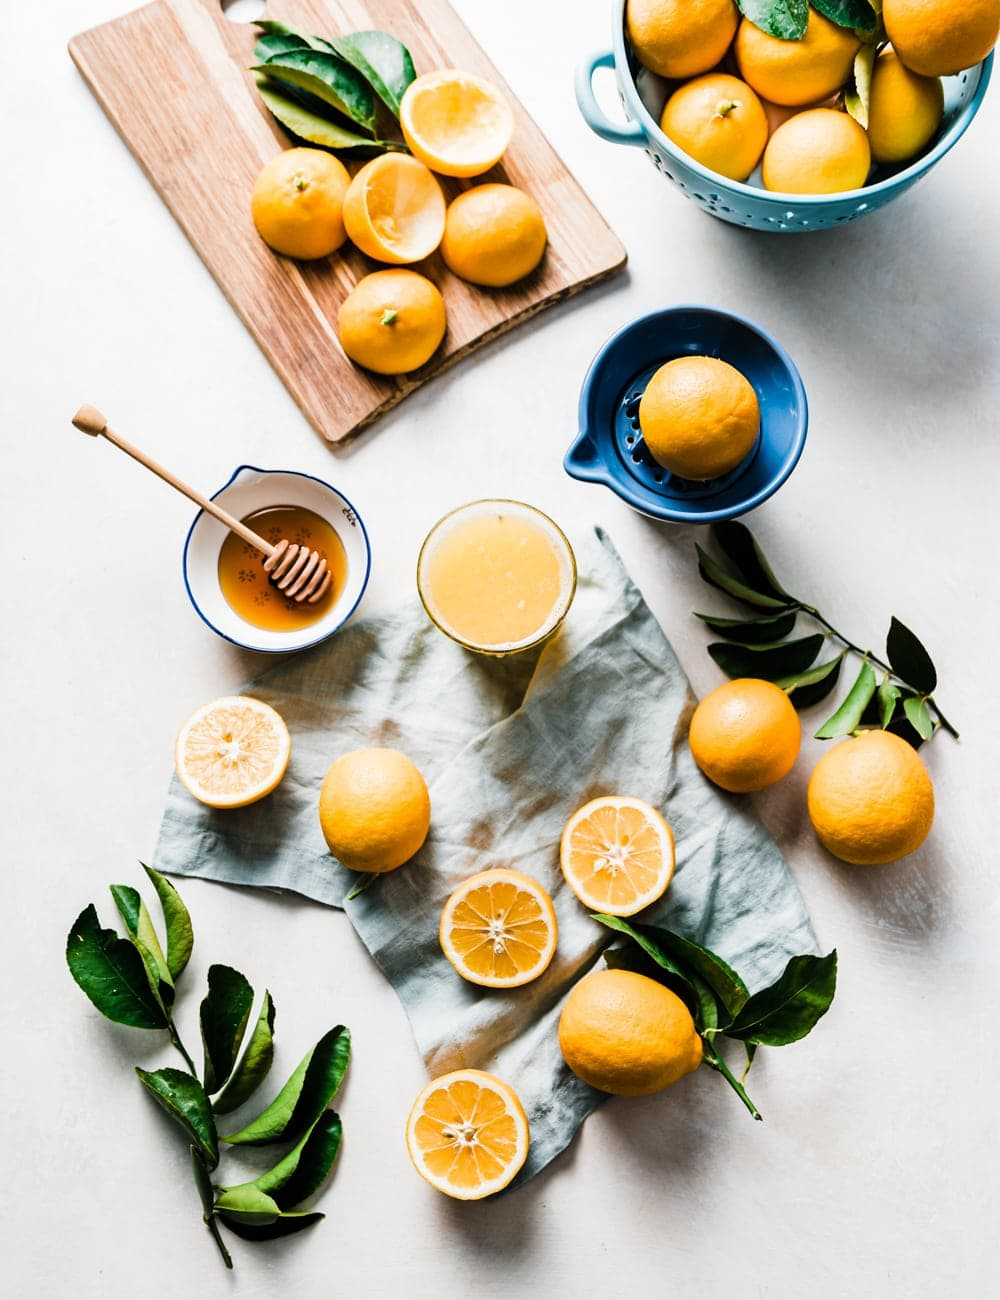 cut and whole lemons, cutting board with lemons, blue bowl filled with lemons, lemon leaves, honey in a small bowl with honey stick, glass of lemon juice